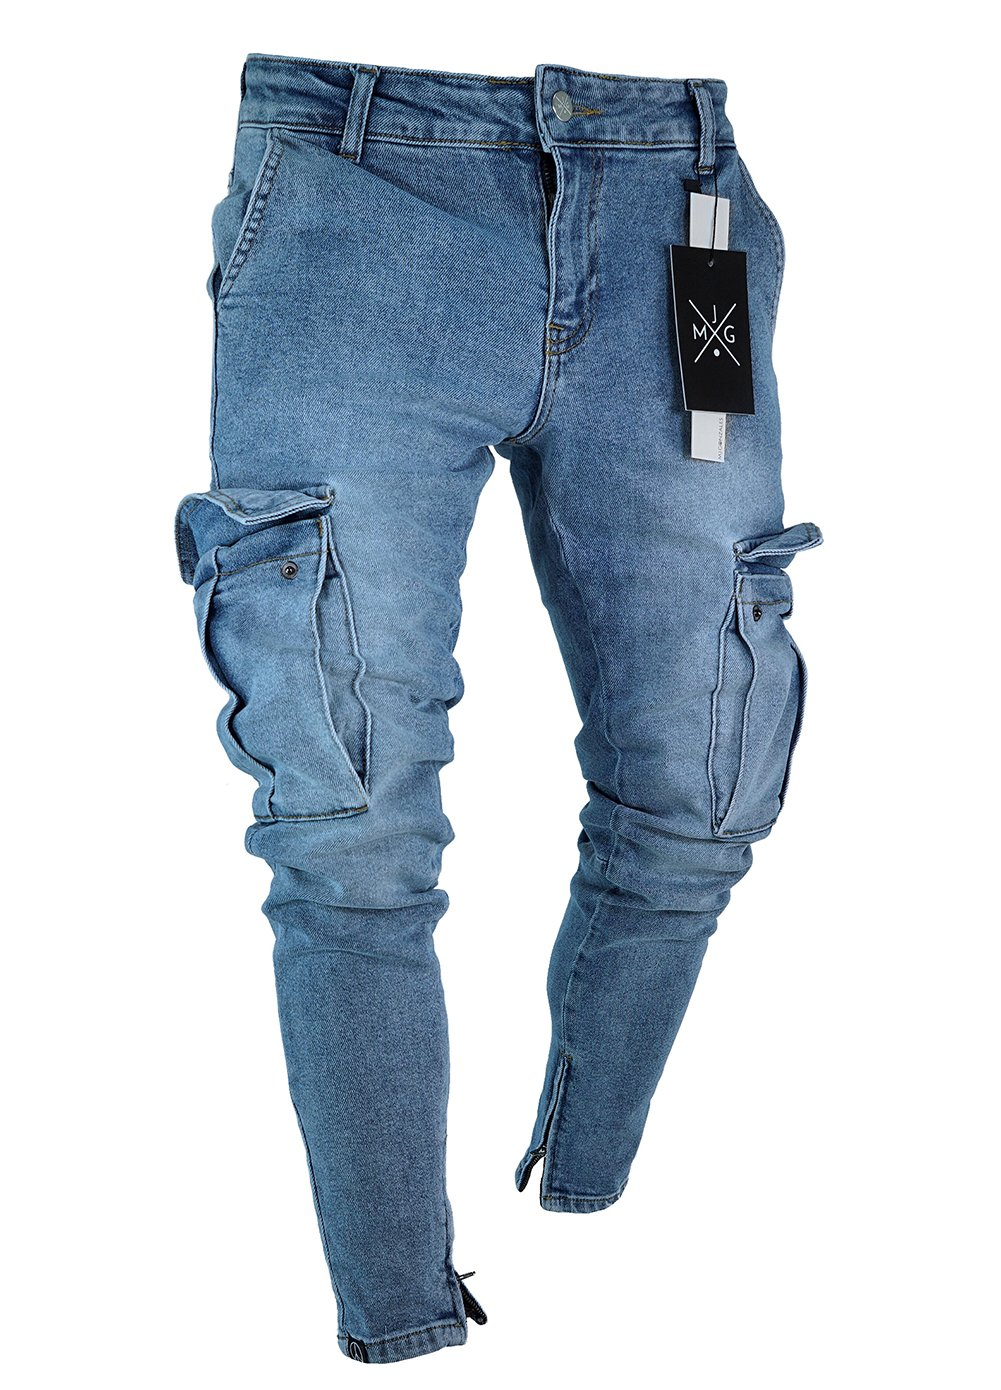 If Lovey Men Straight Slim Side Pocket Denim Jean Pants Punk Ripped Skinny Trousers (L, Blue)